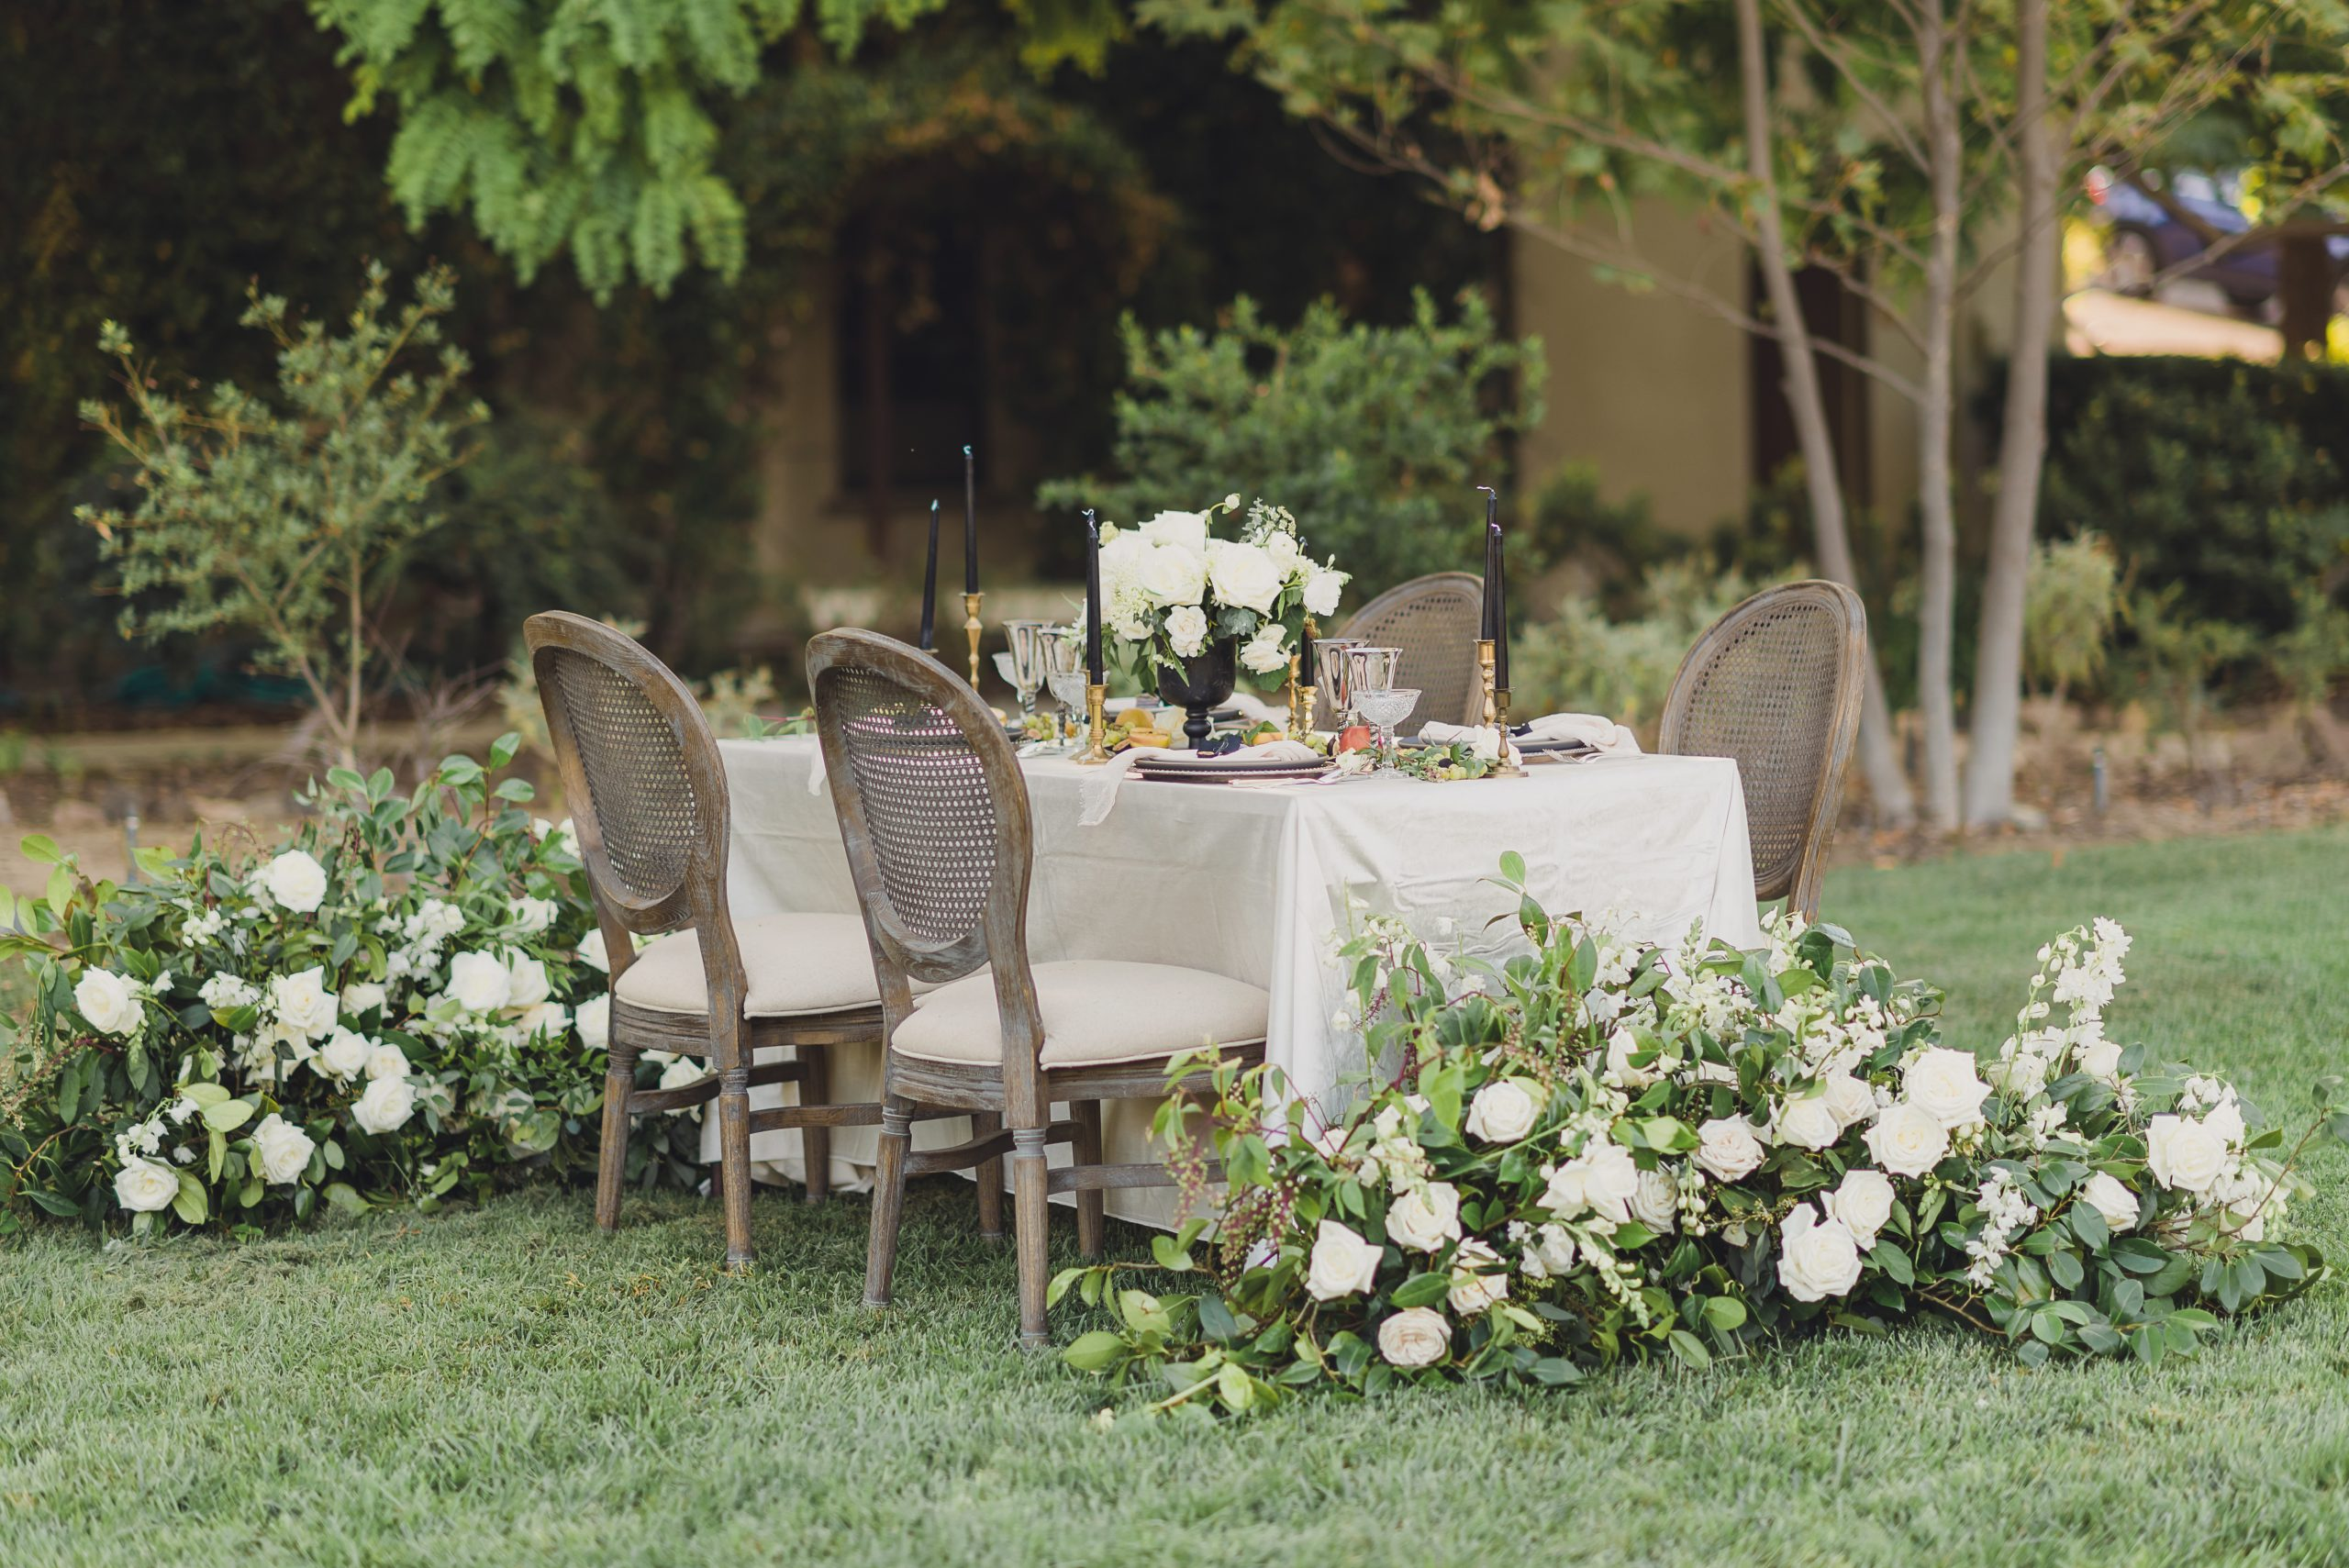 Outdoor spring wedding table setting with white florals